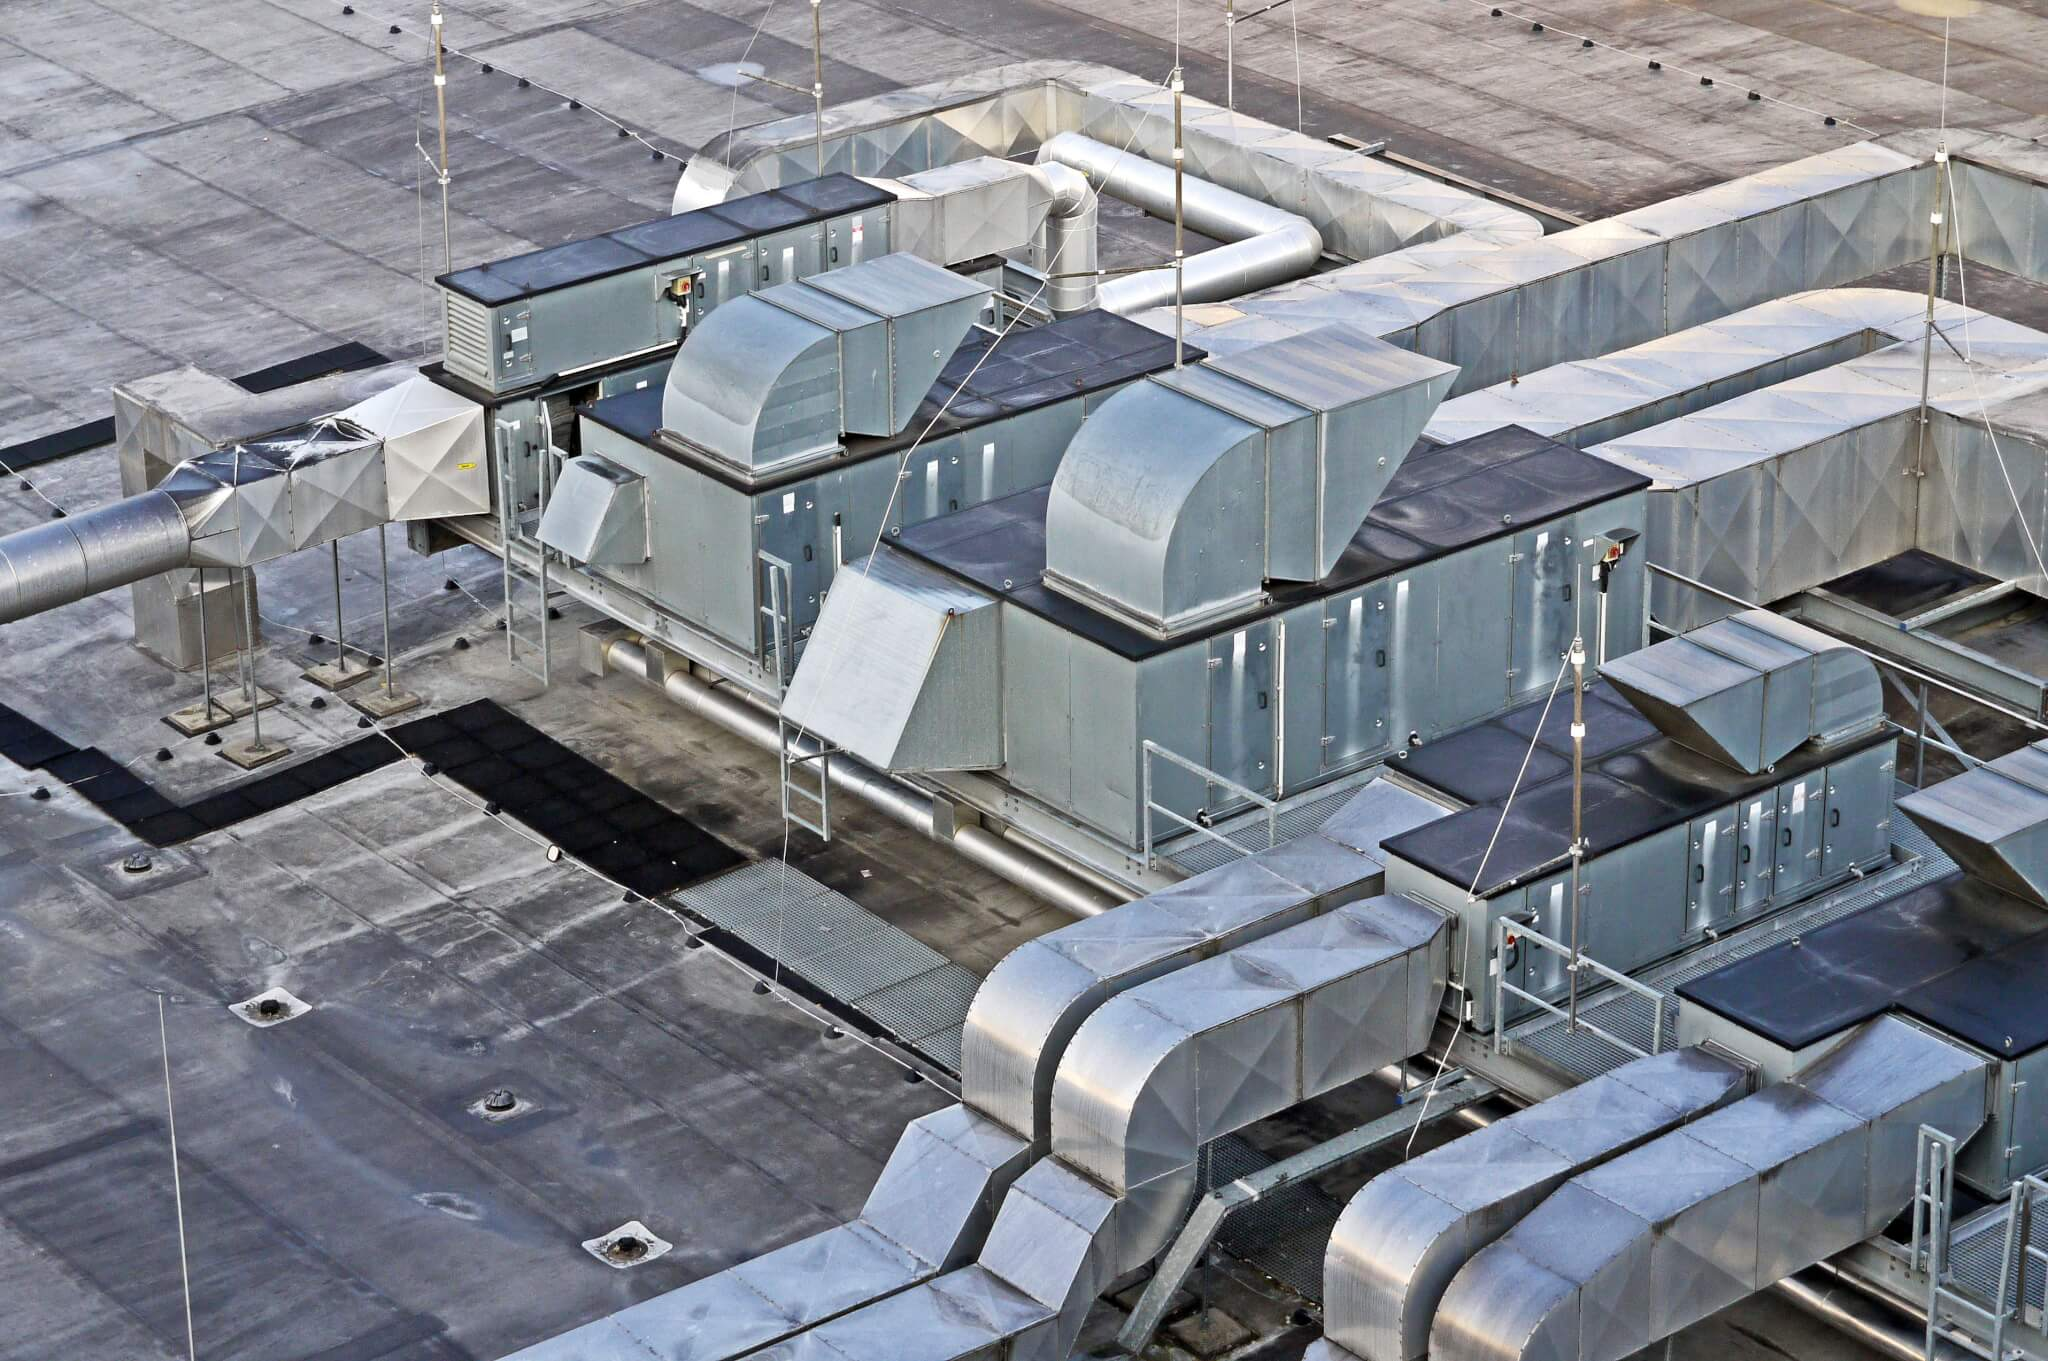 SHOULD WE GET OUR AIR DUCT CLEANED?